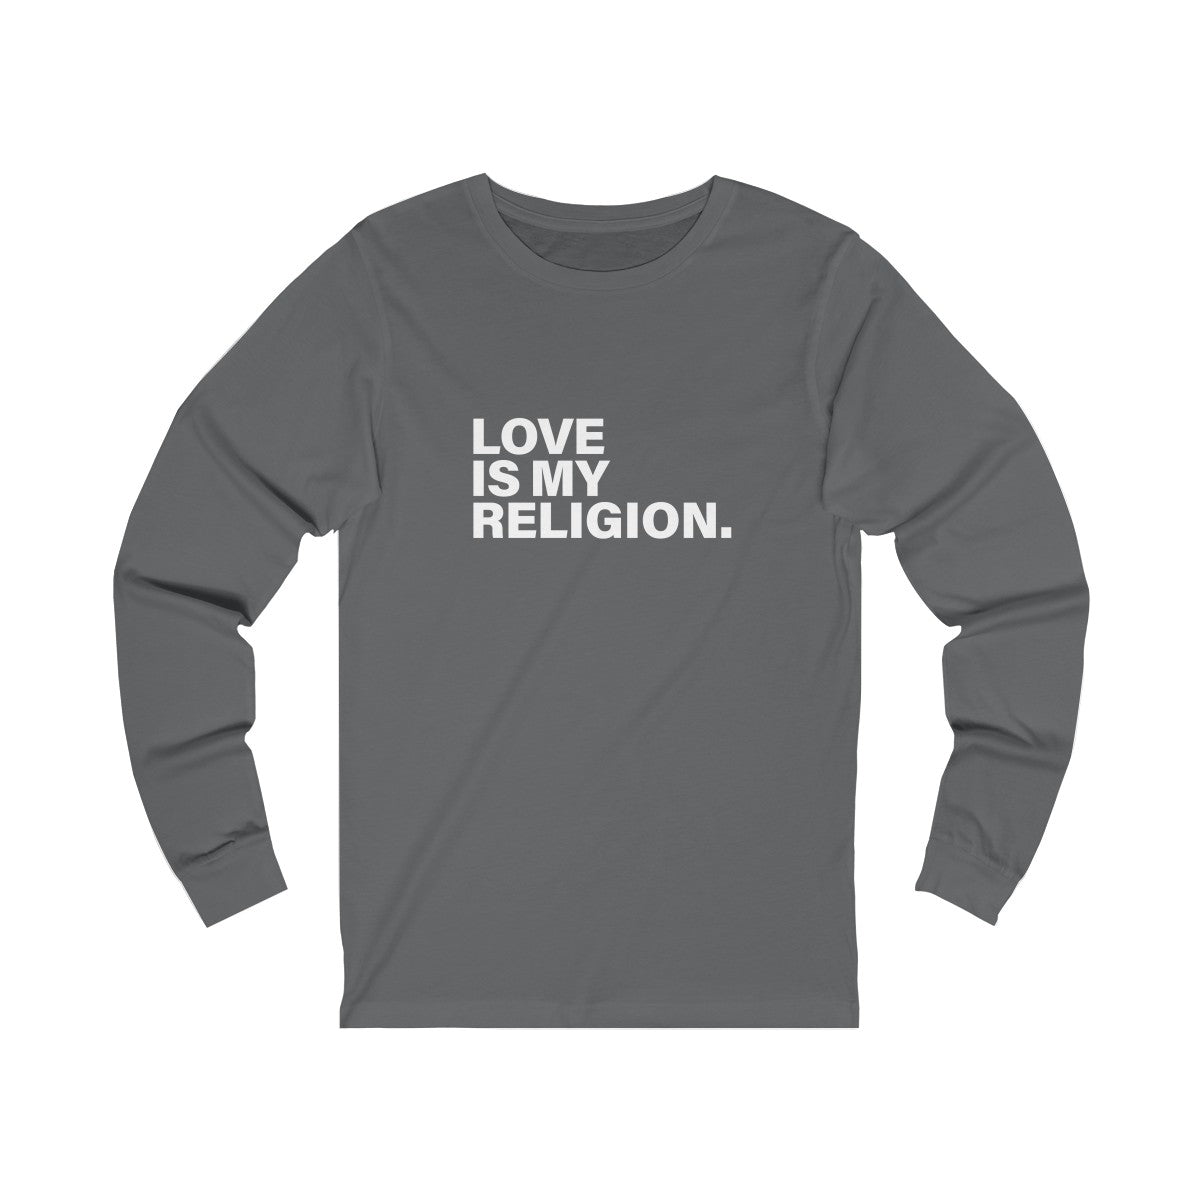 Love Is My Religion Unisex Jersey Long Sleeve Tee